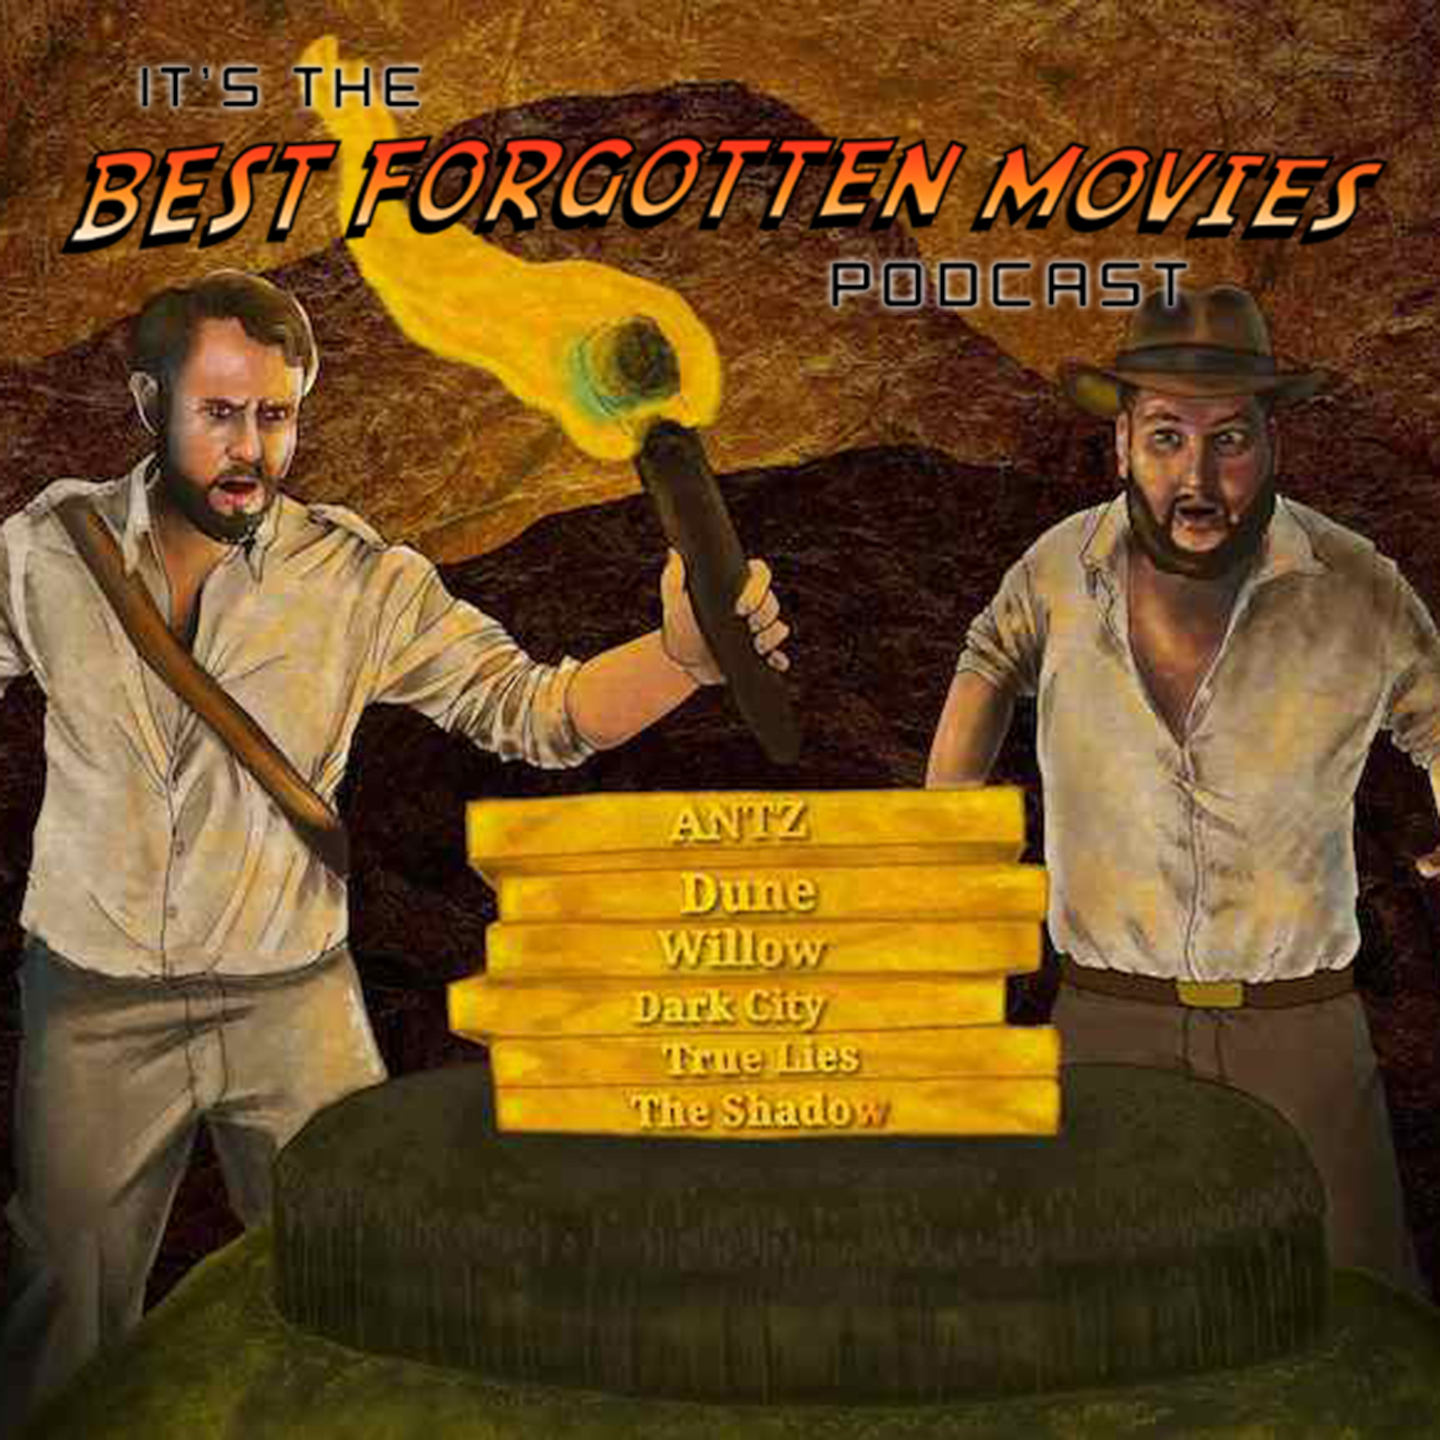 Best Forgotten Movies!